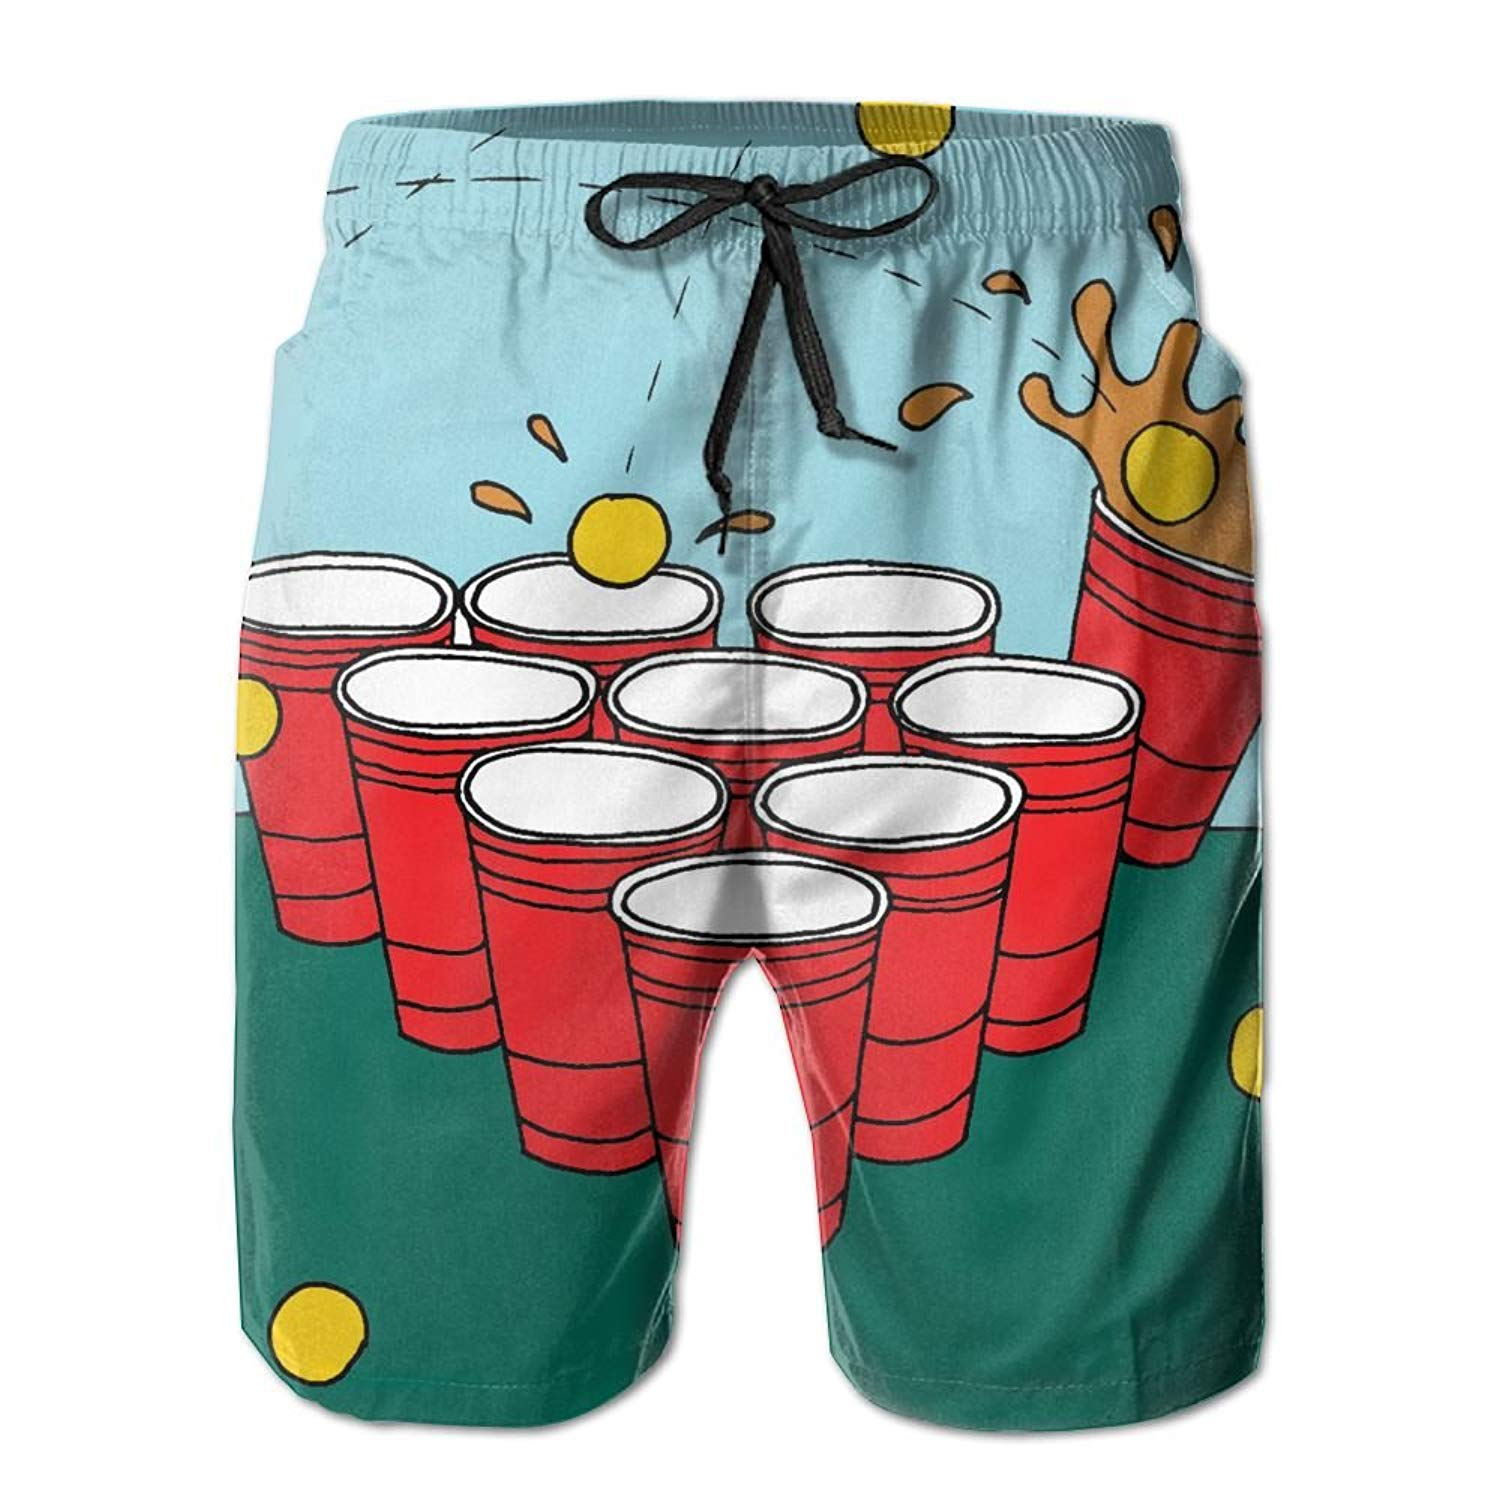 c03113f98dd45 Get Quotations · Cjhxqt Beer Pong Mens Boardshorts Swim Trunks Not Fade  Athletic Shorts Mens Swim Trunks